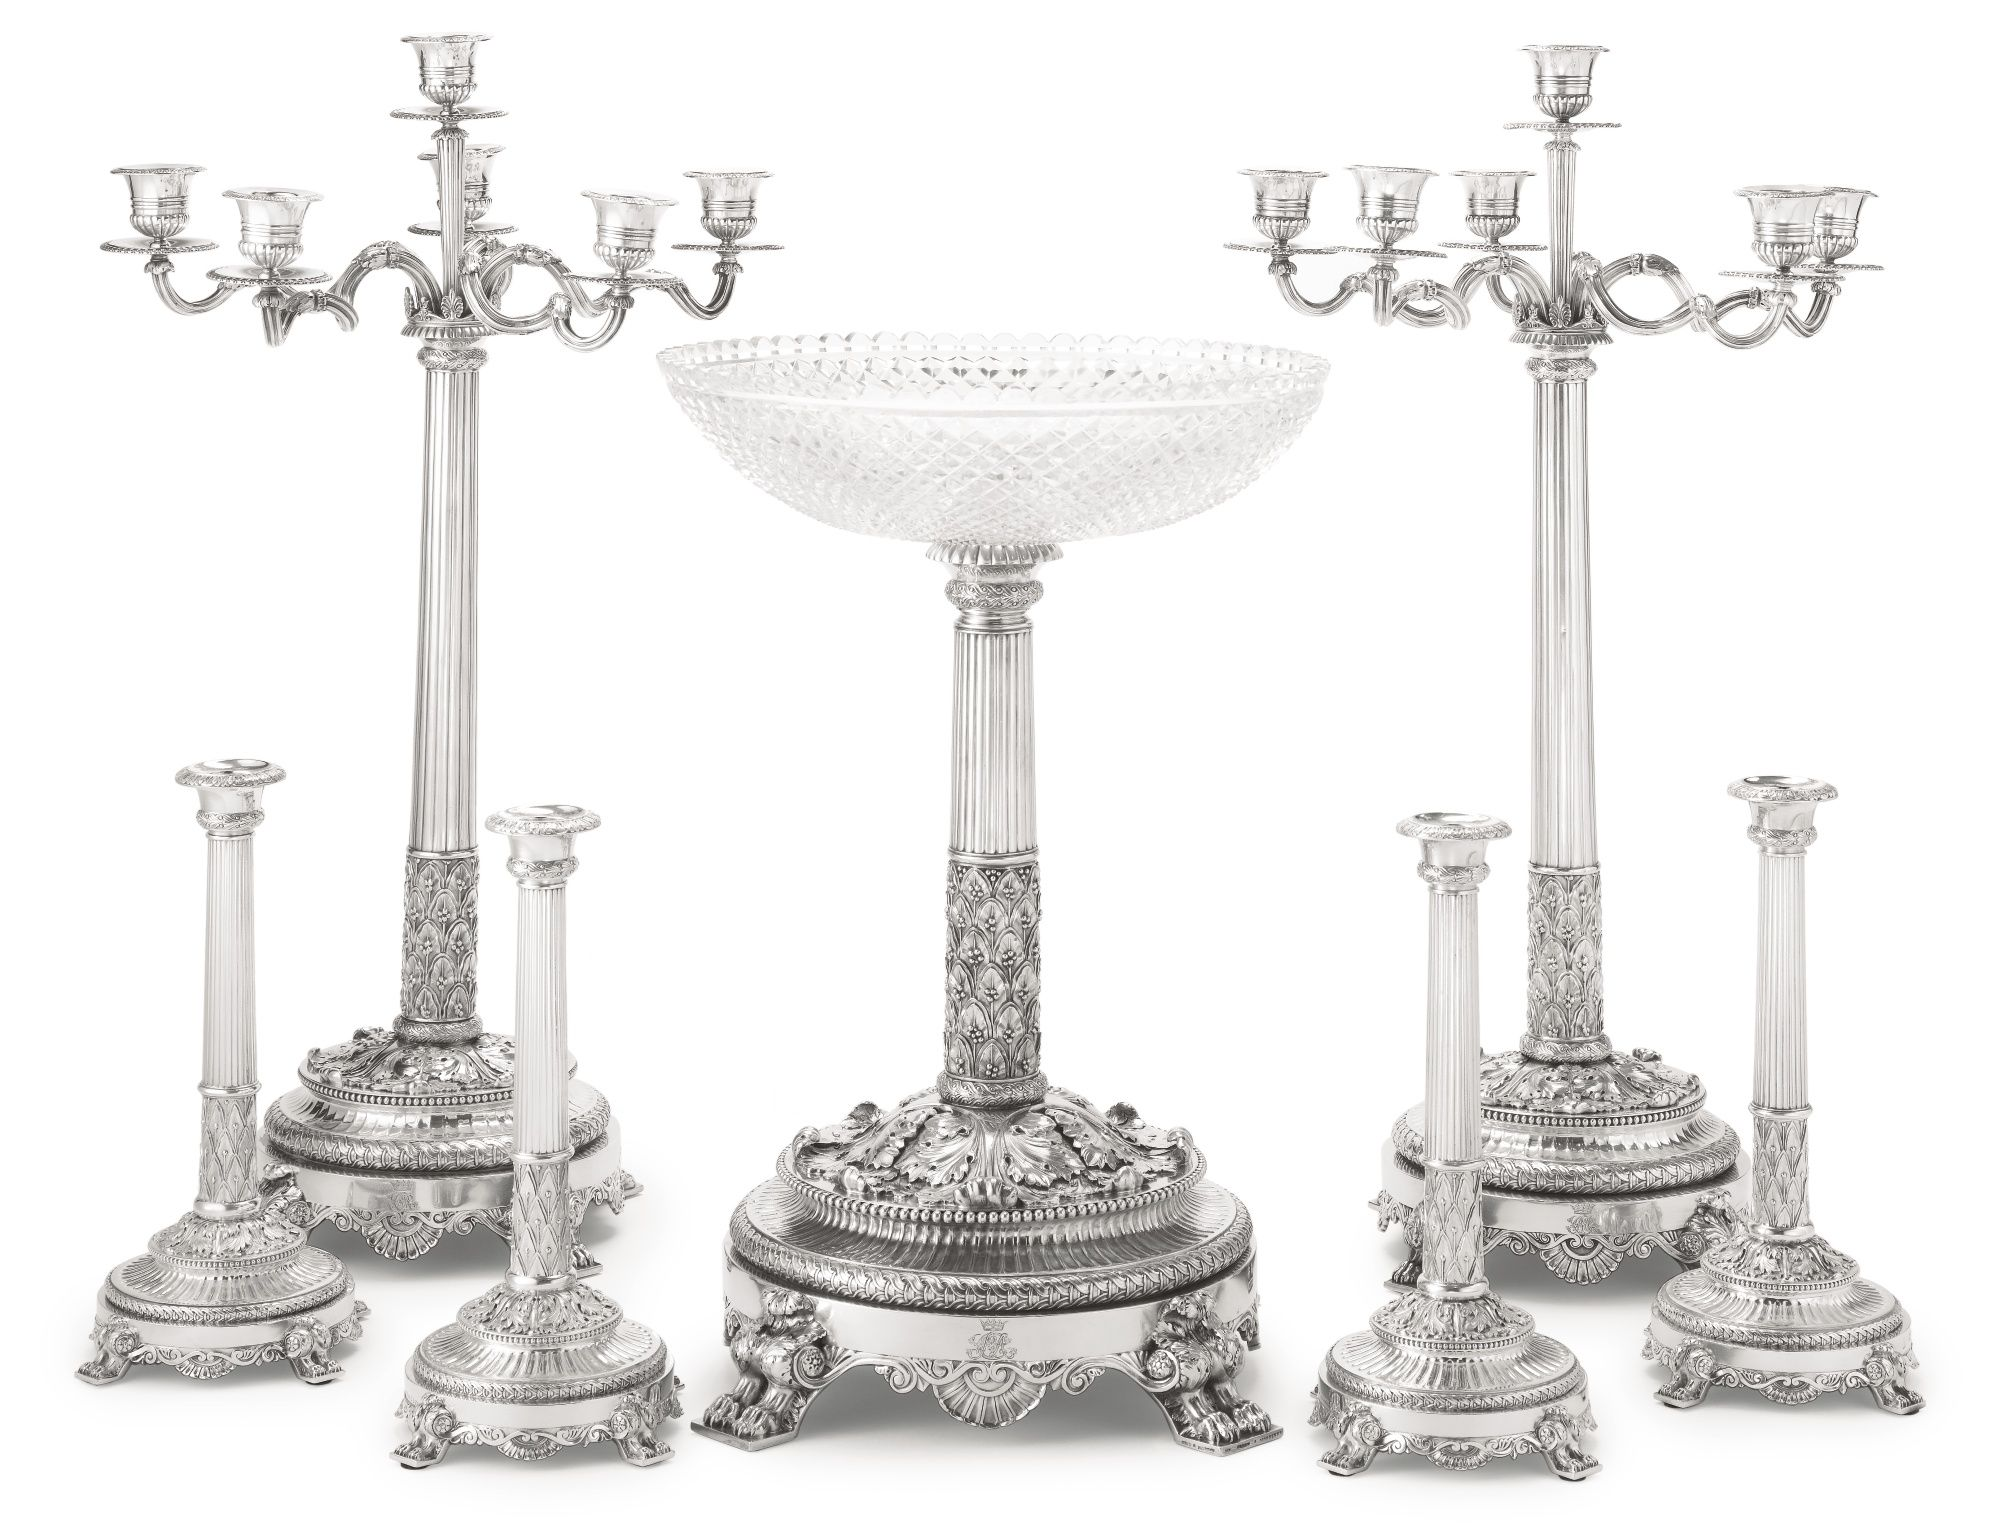 centre table and epergne | sotheby's n09068lot759hden